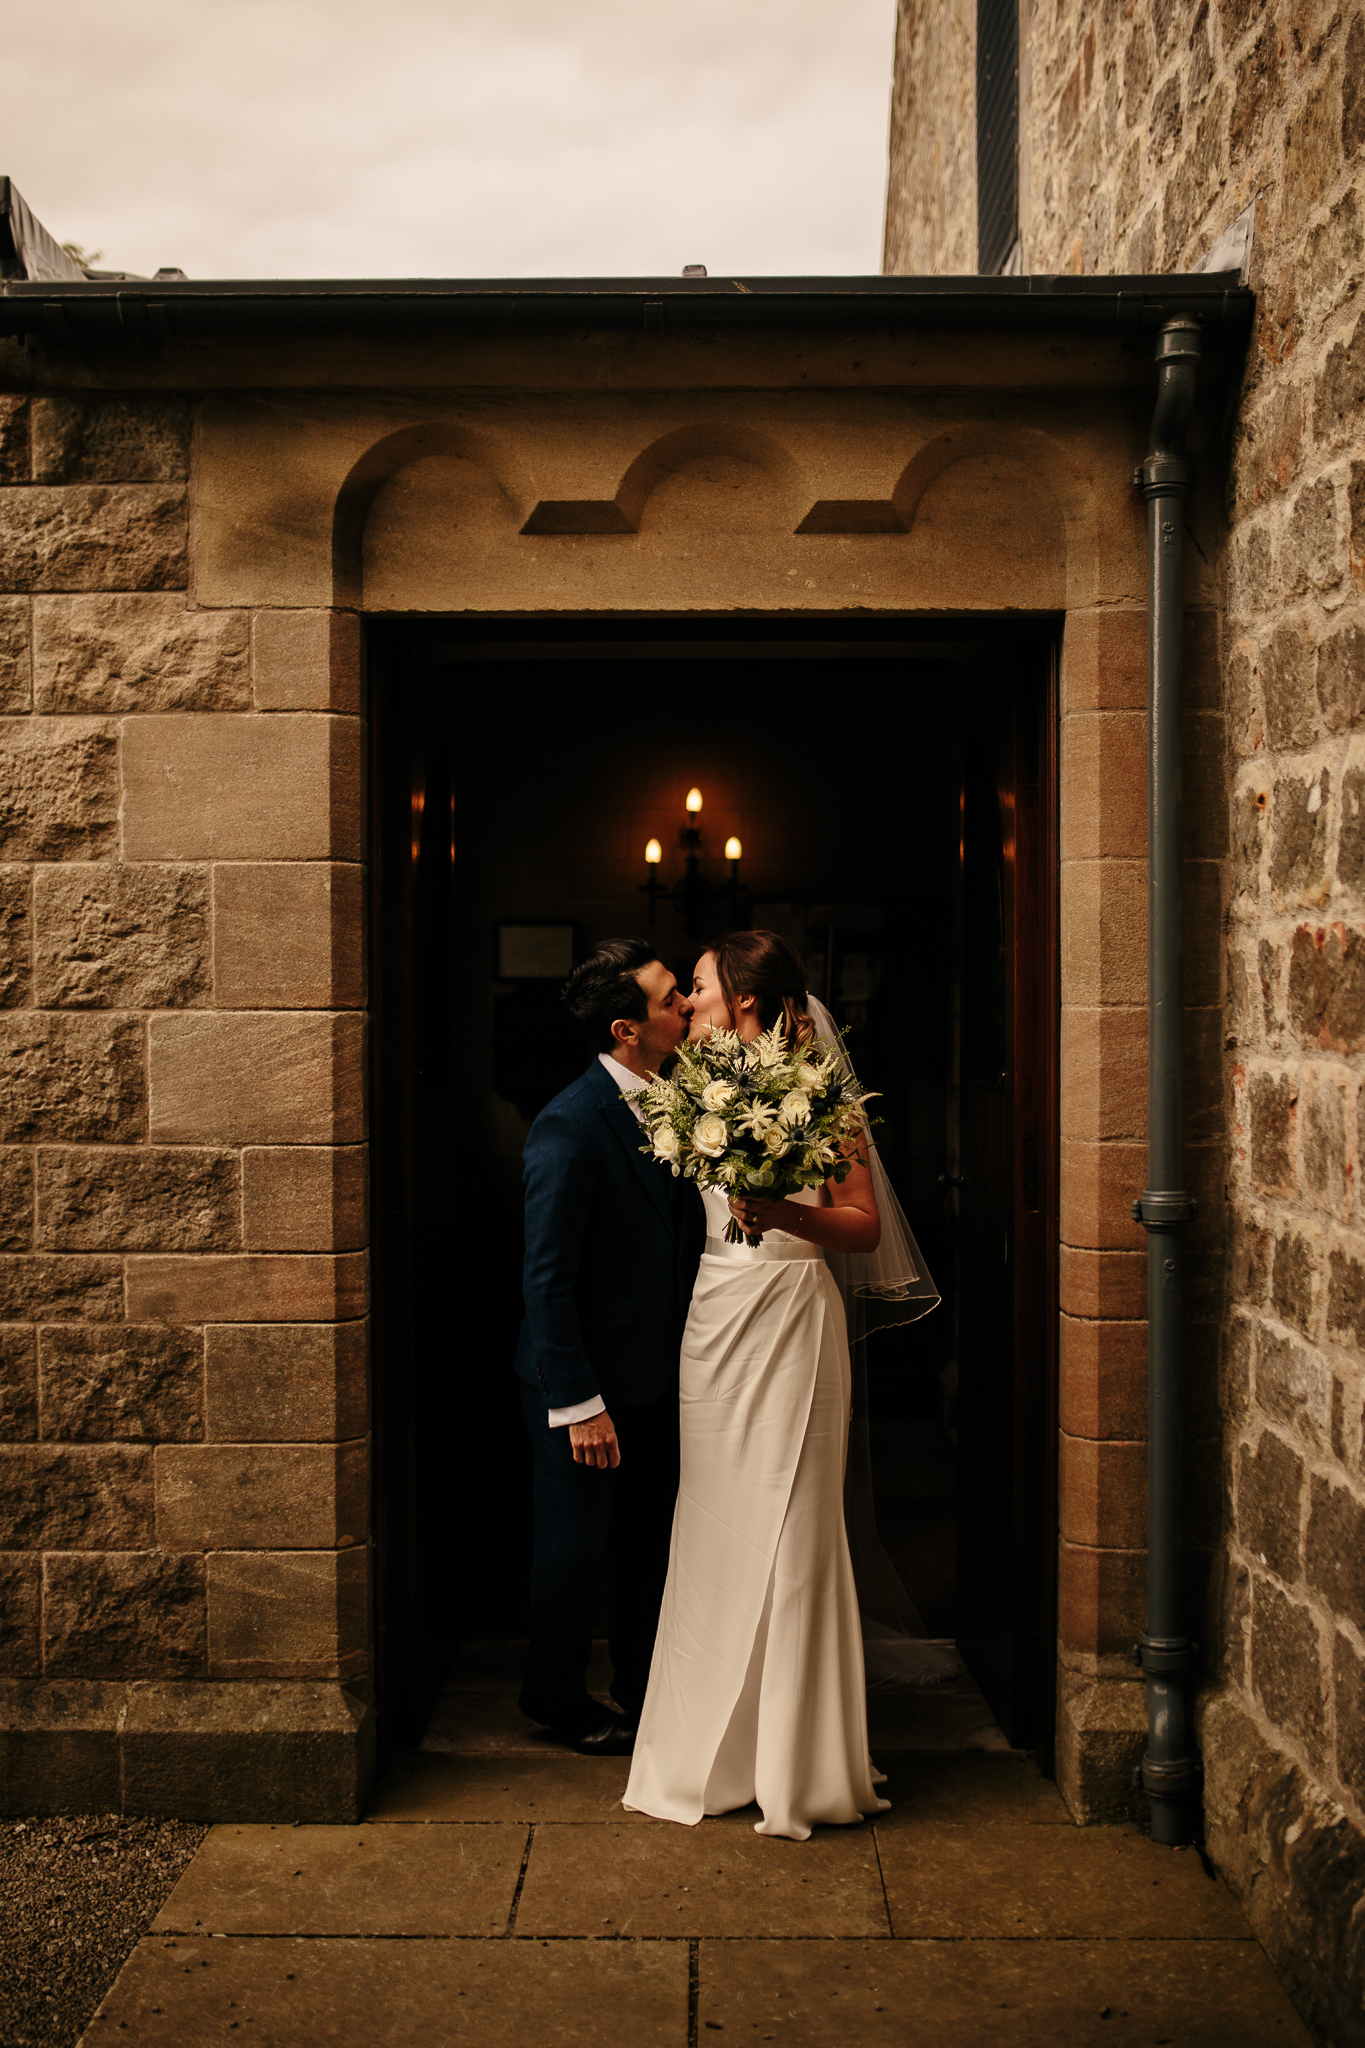 The Kiss - Kiss at the door - Kiss after ceremony - Husband & Wife - Perfect light - Forever Happy - Emma & Alex - WeddingsbyQay  (91 of 197).jpg